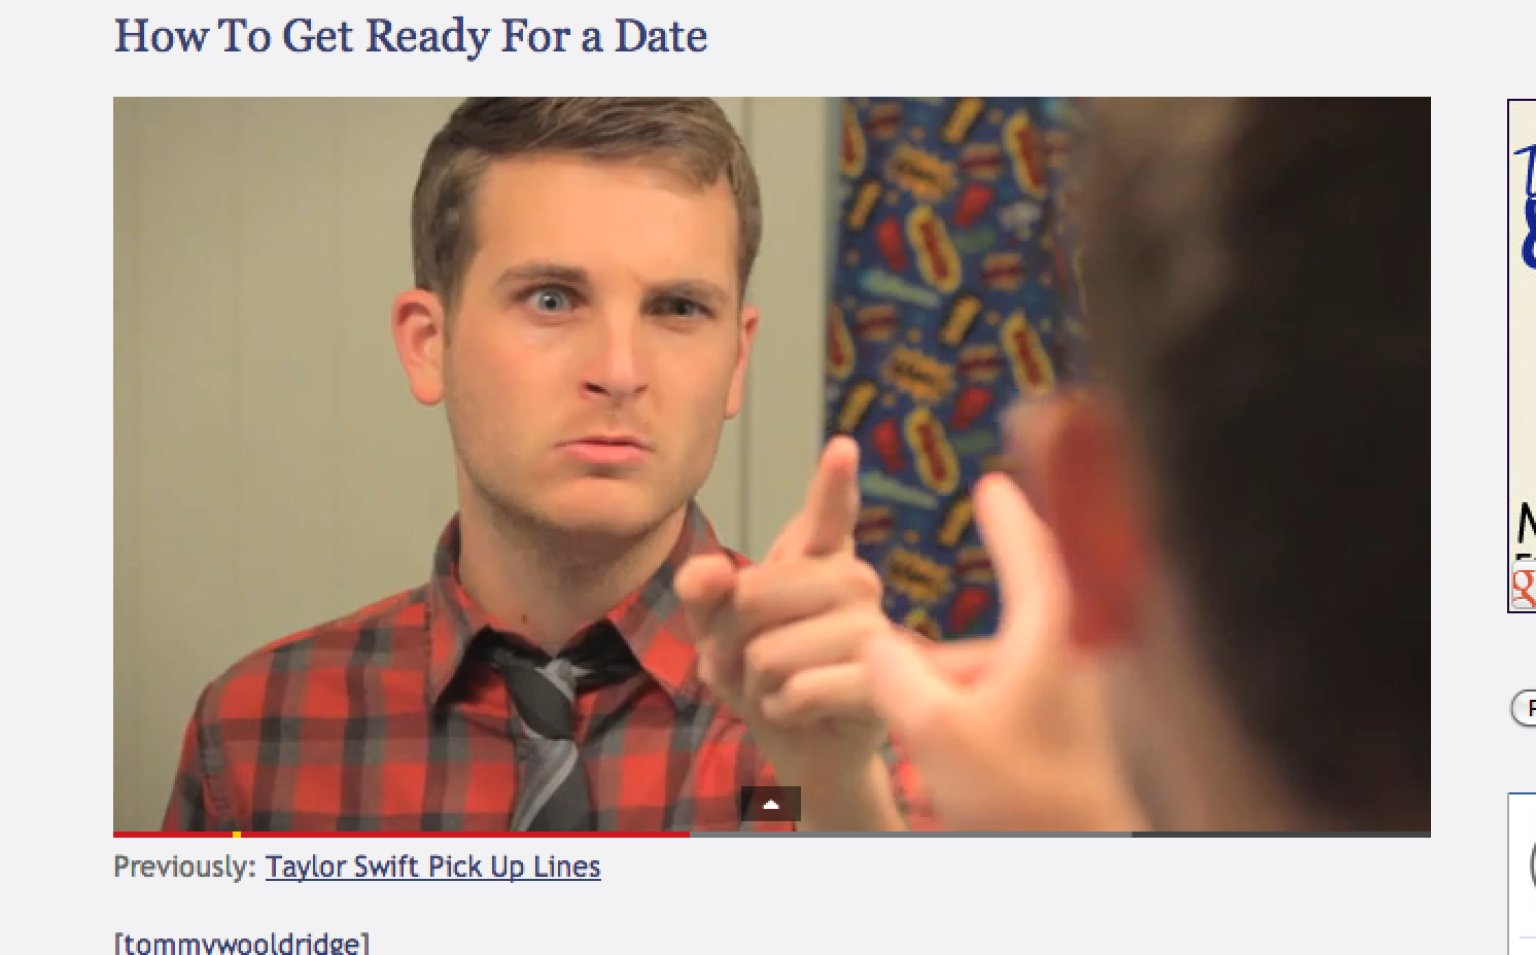 How to get ready for a date